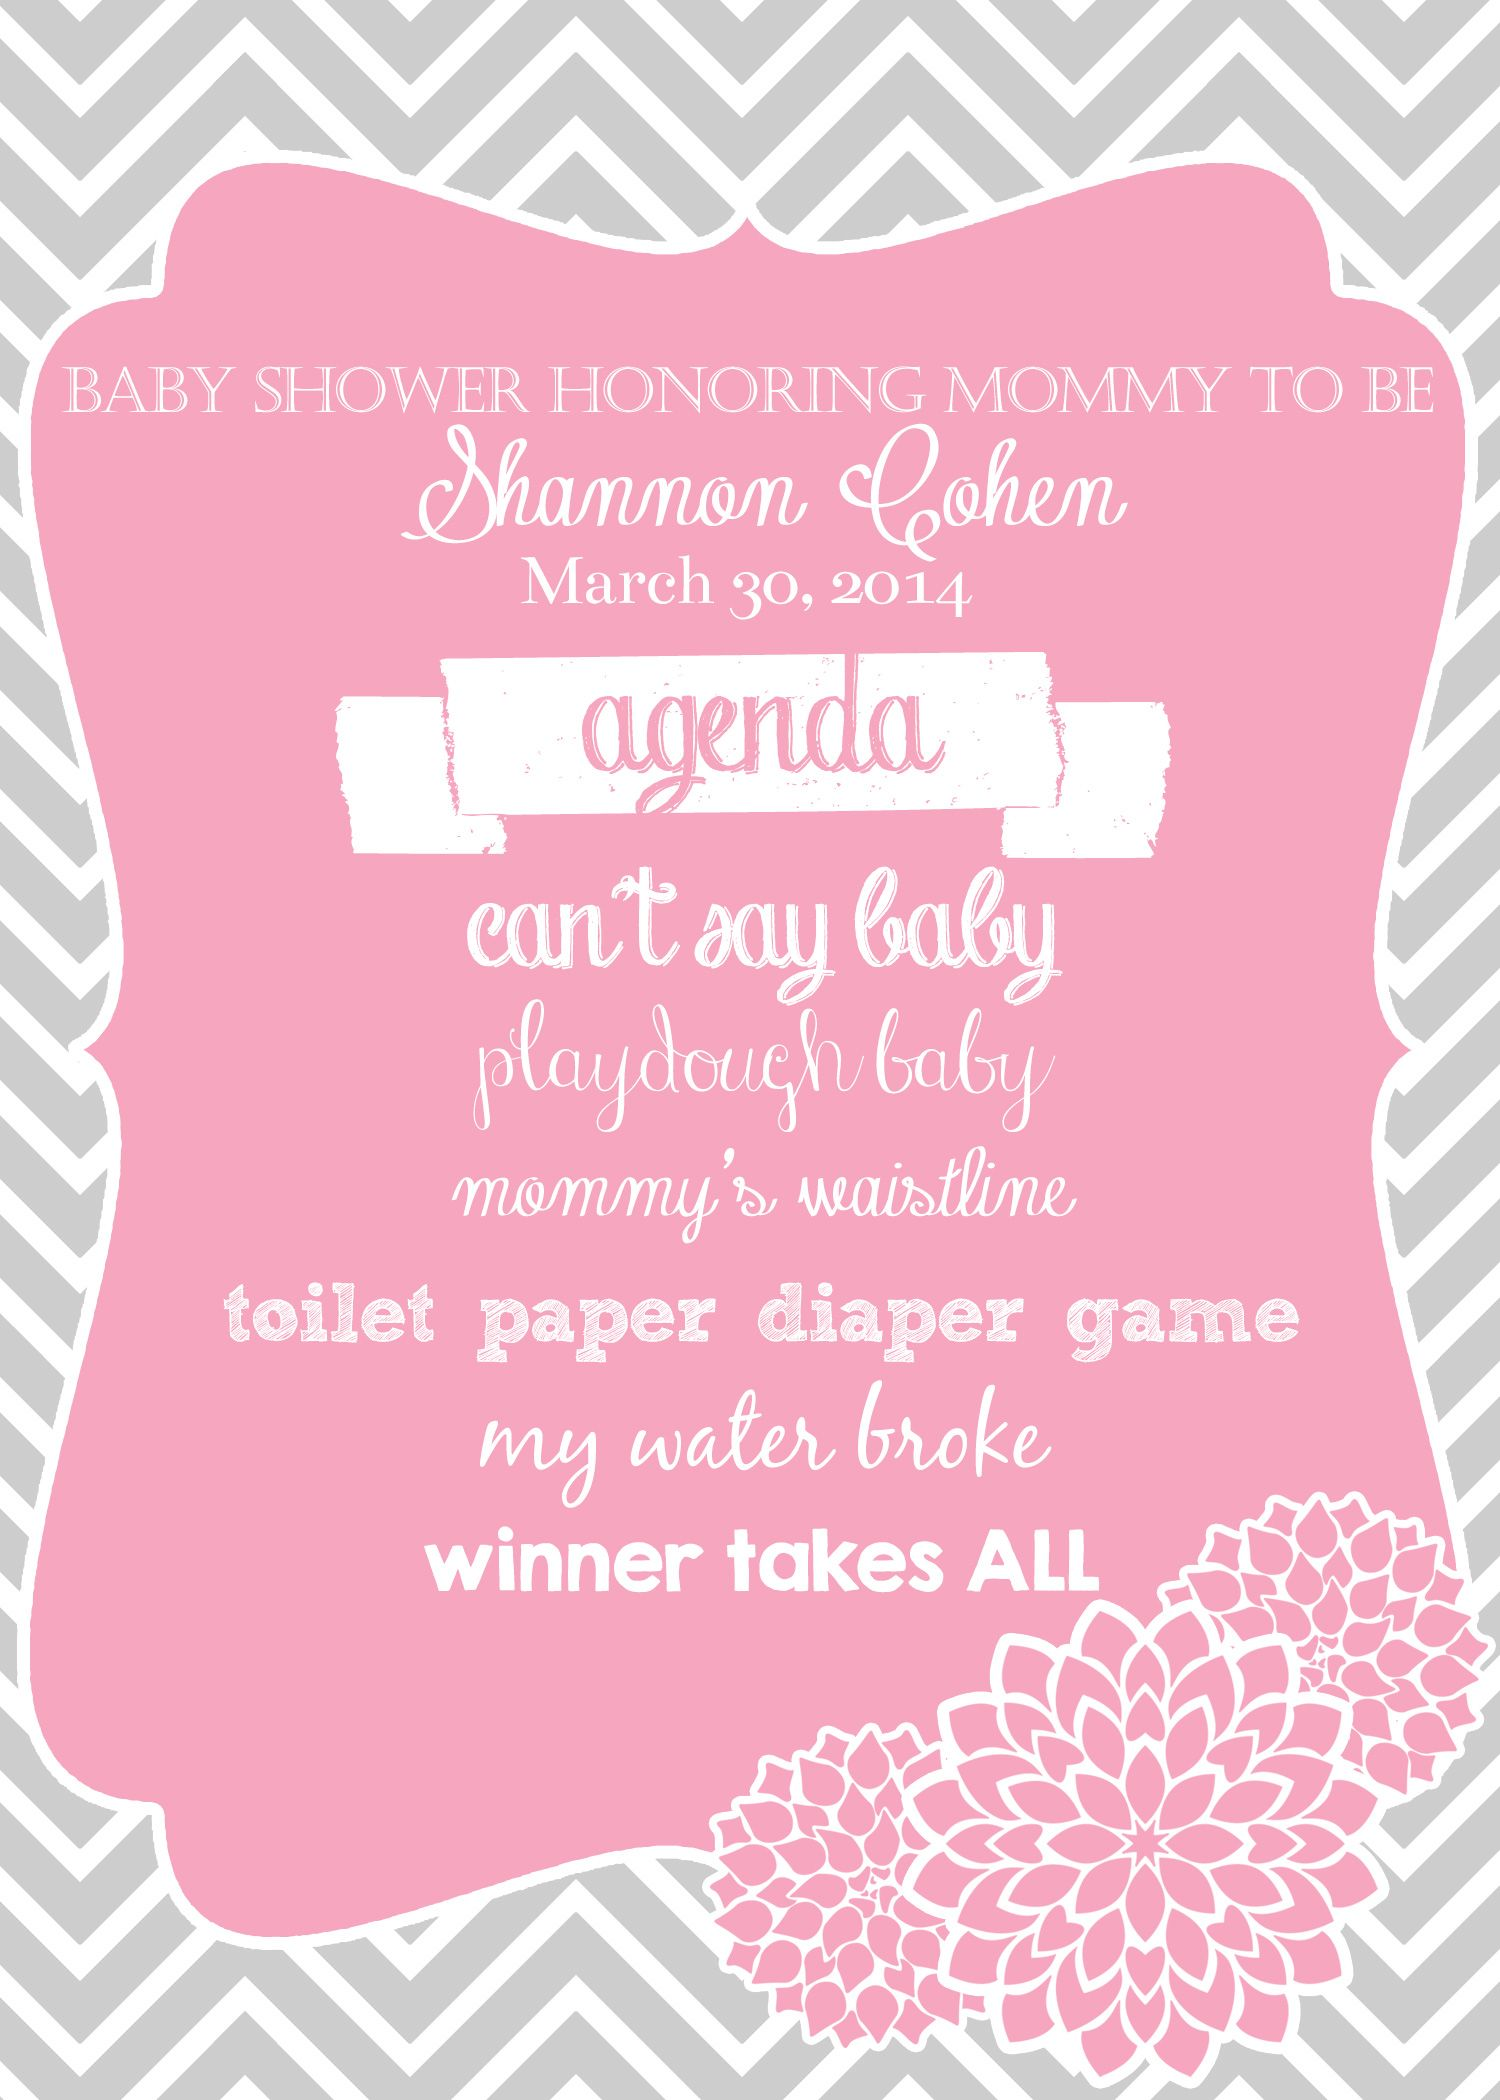 Camellia Events 14 West Graphics Baby Shower Agenda Pink And Gray